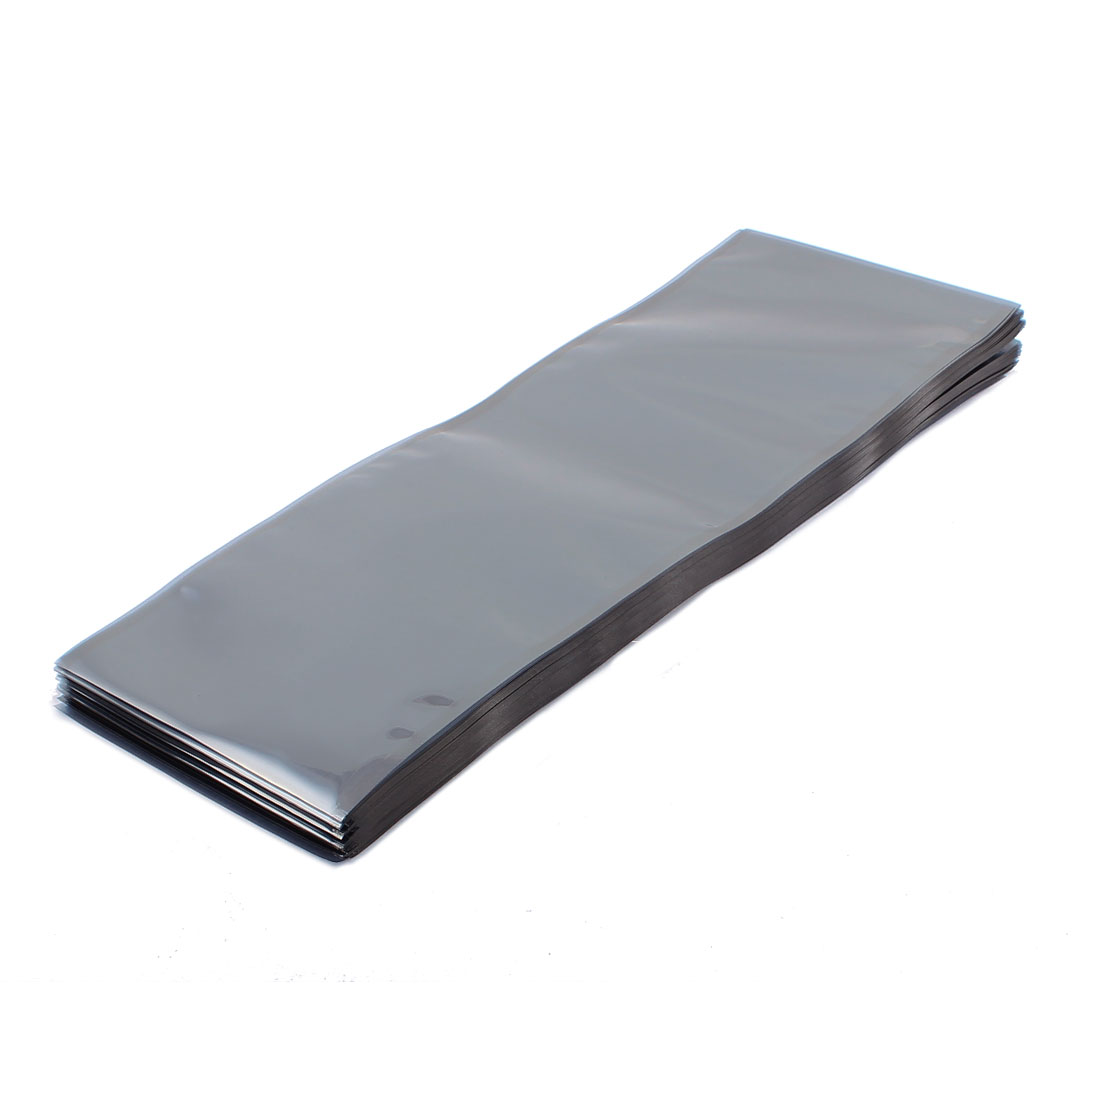 100 Pcs 120mm x 330mm Silver Tone Flat Open Top Anti Static Bag For Electronics